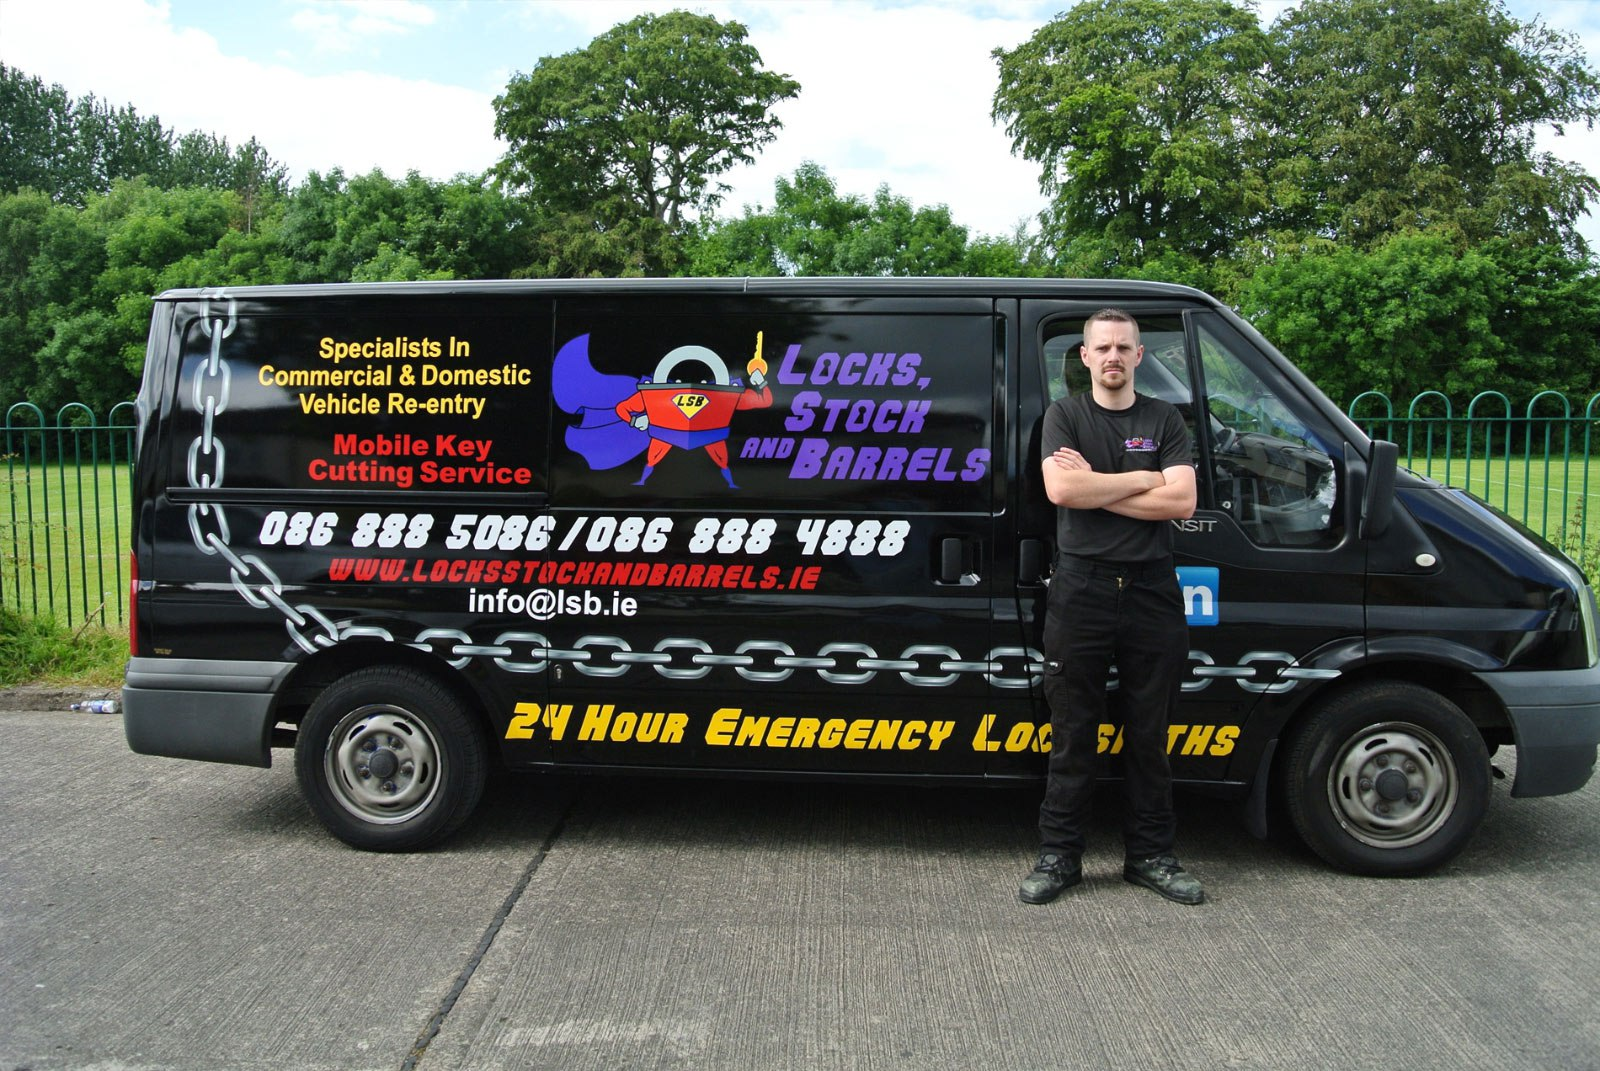 locksmith-dublin-with-van2